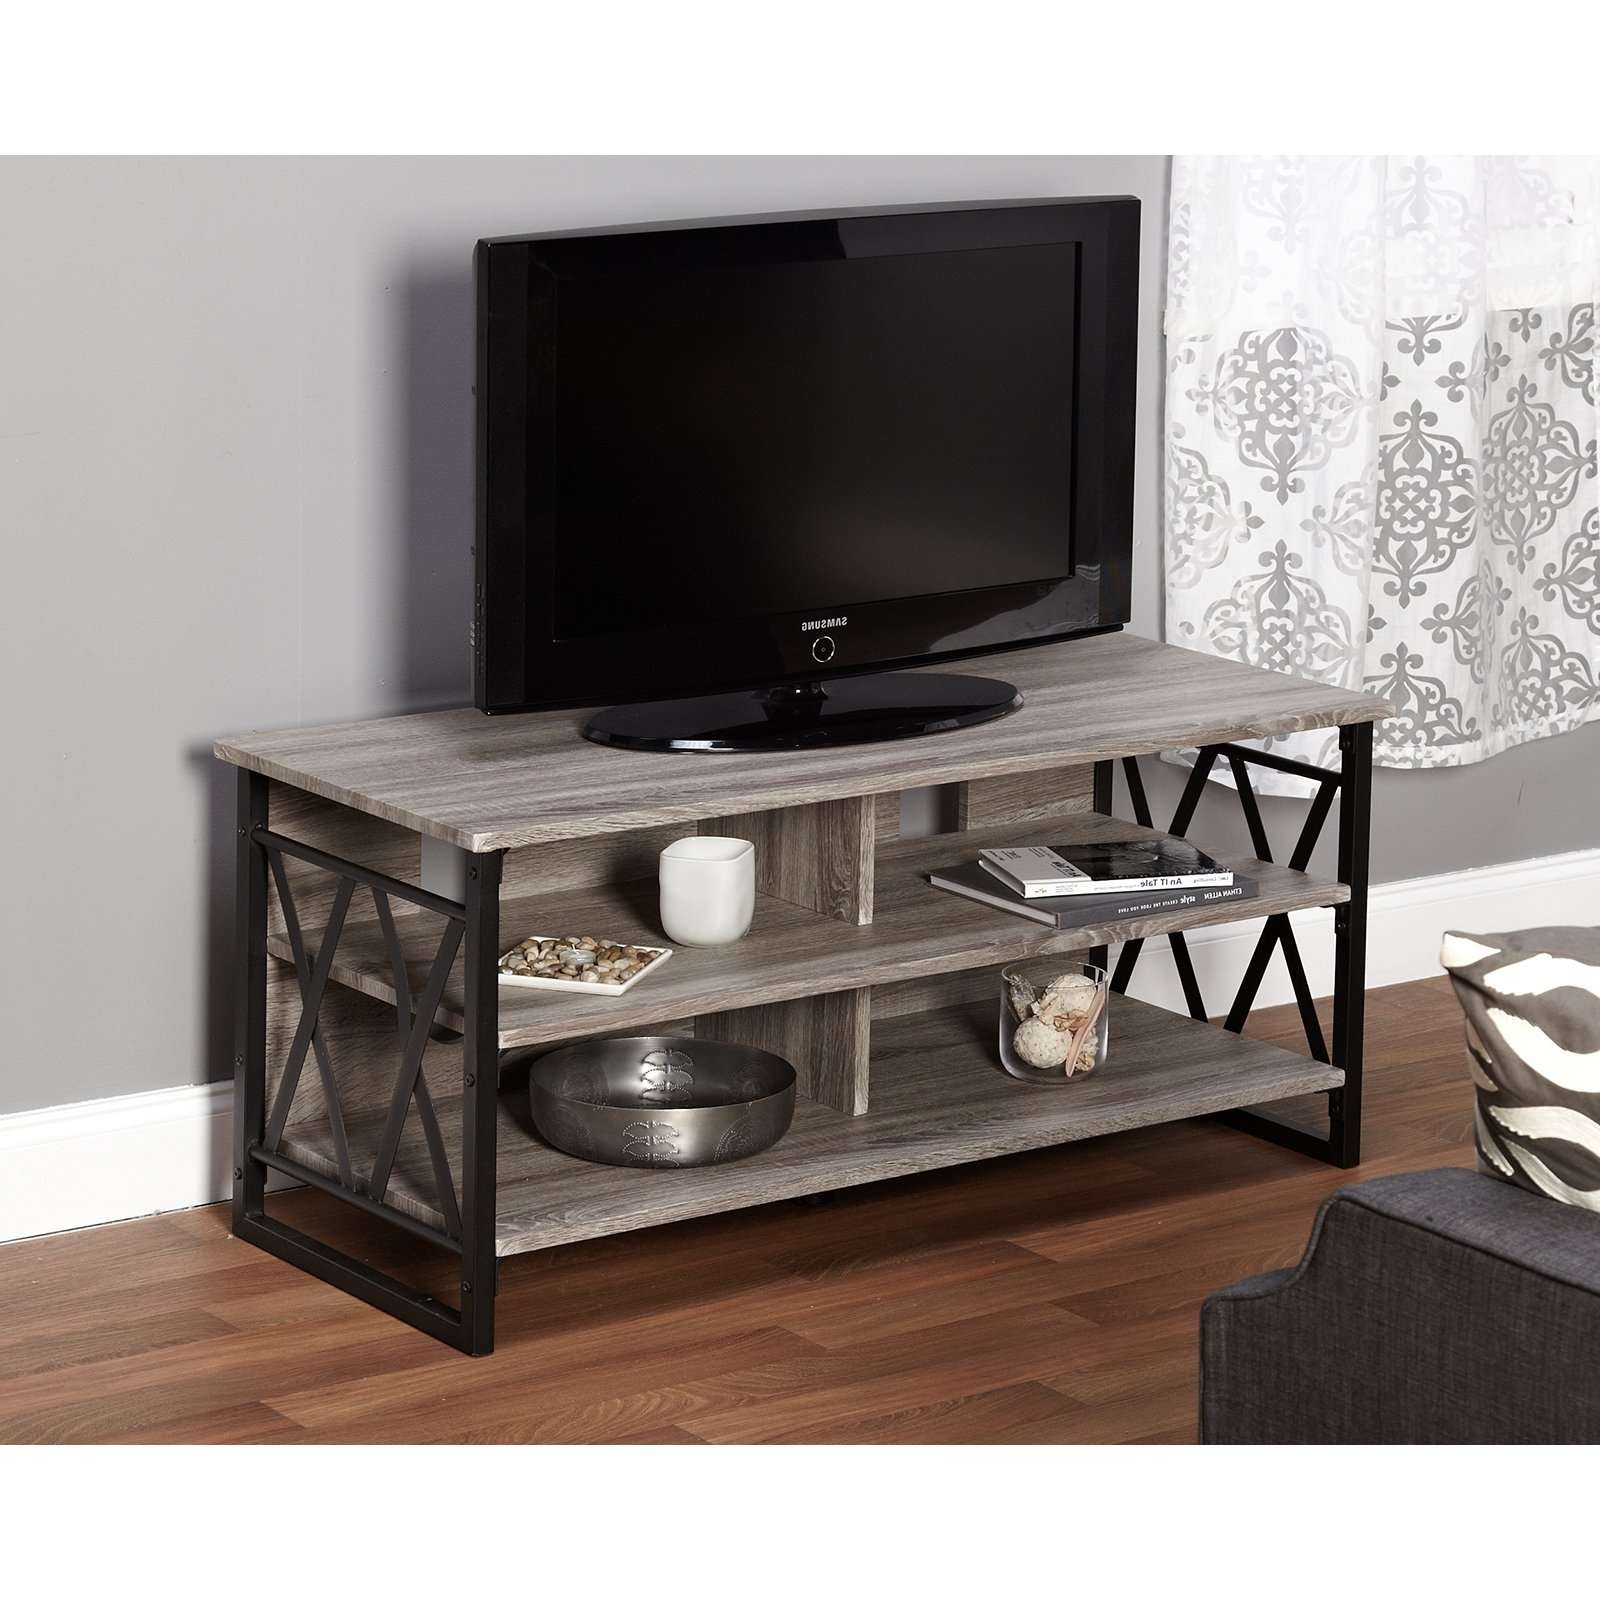 Belham Living Edison Reclaimed Wood Tv Stand | Hayneedle With Recycled Wood Tv Stands (View 10 of 15)